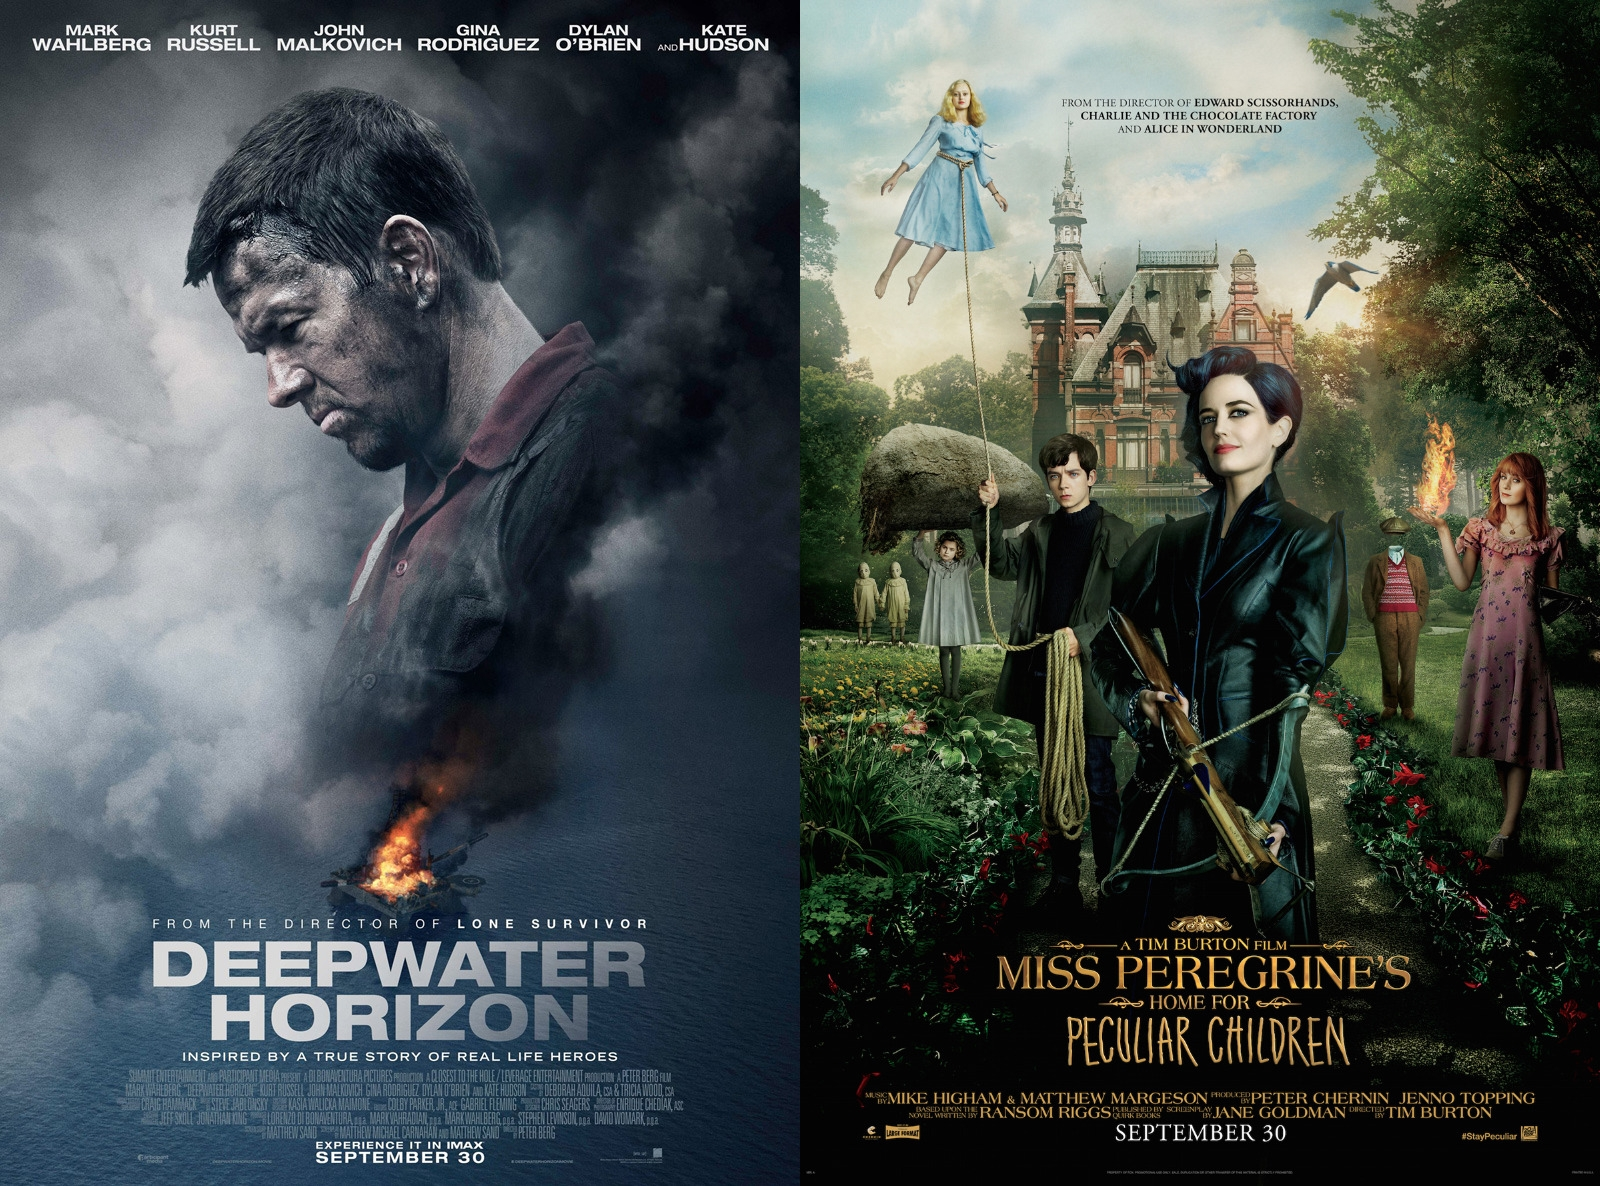 TRAILERS: Miss Peregrine's and Deepwater Horizon